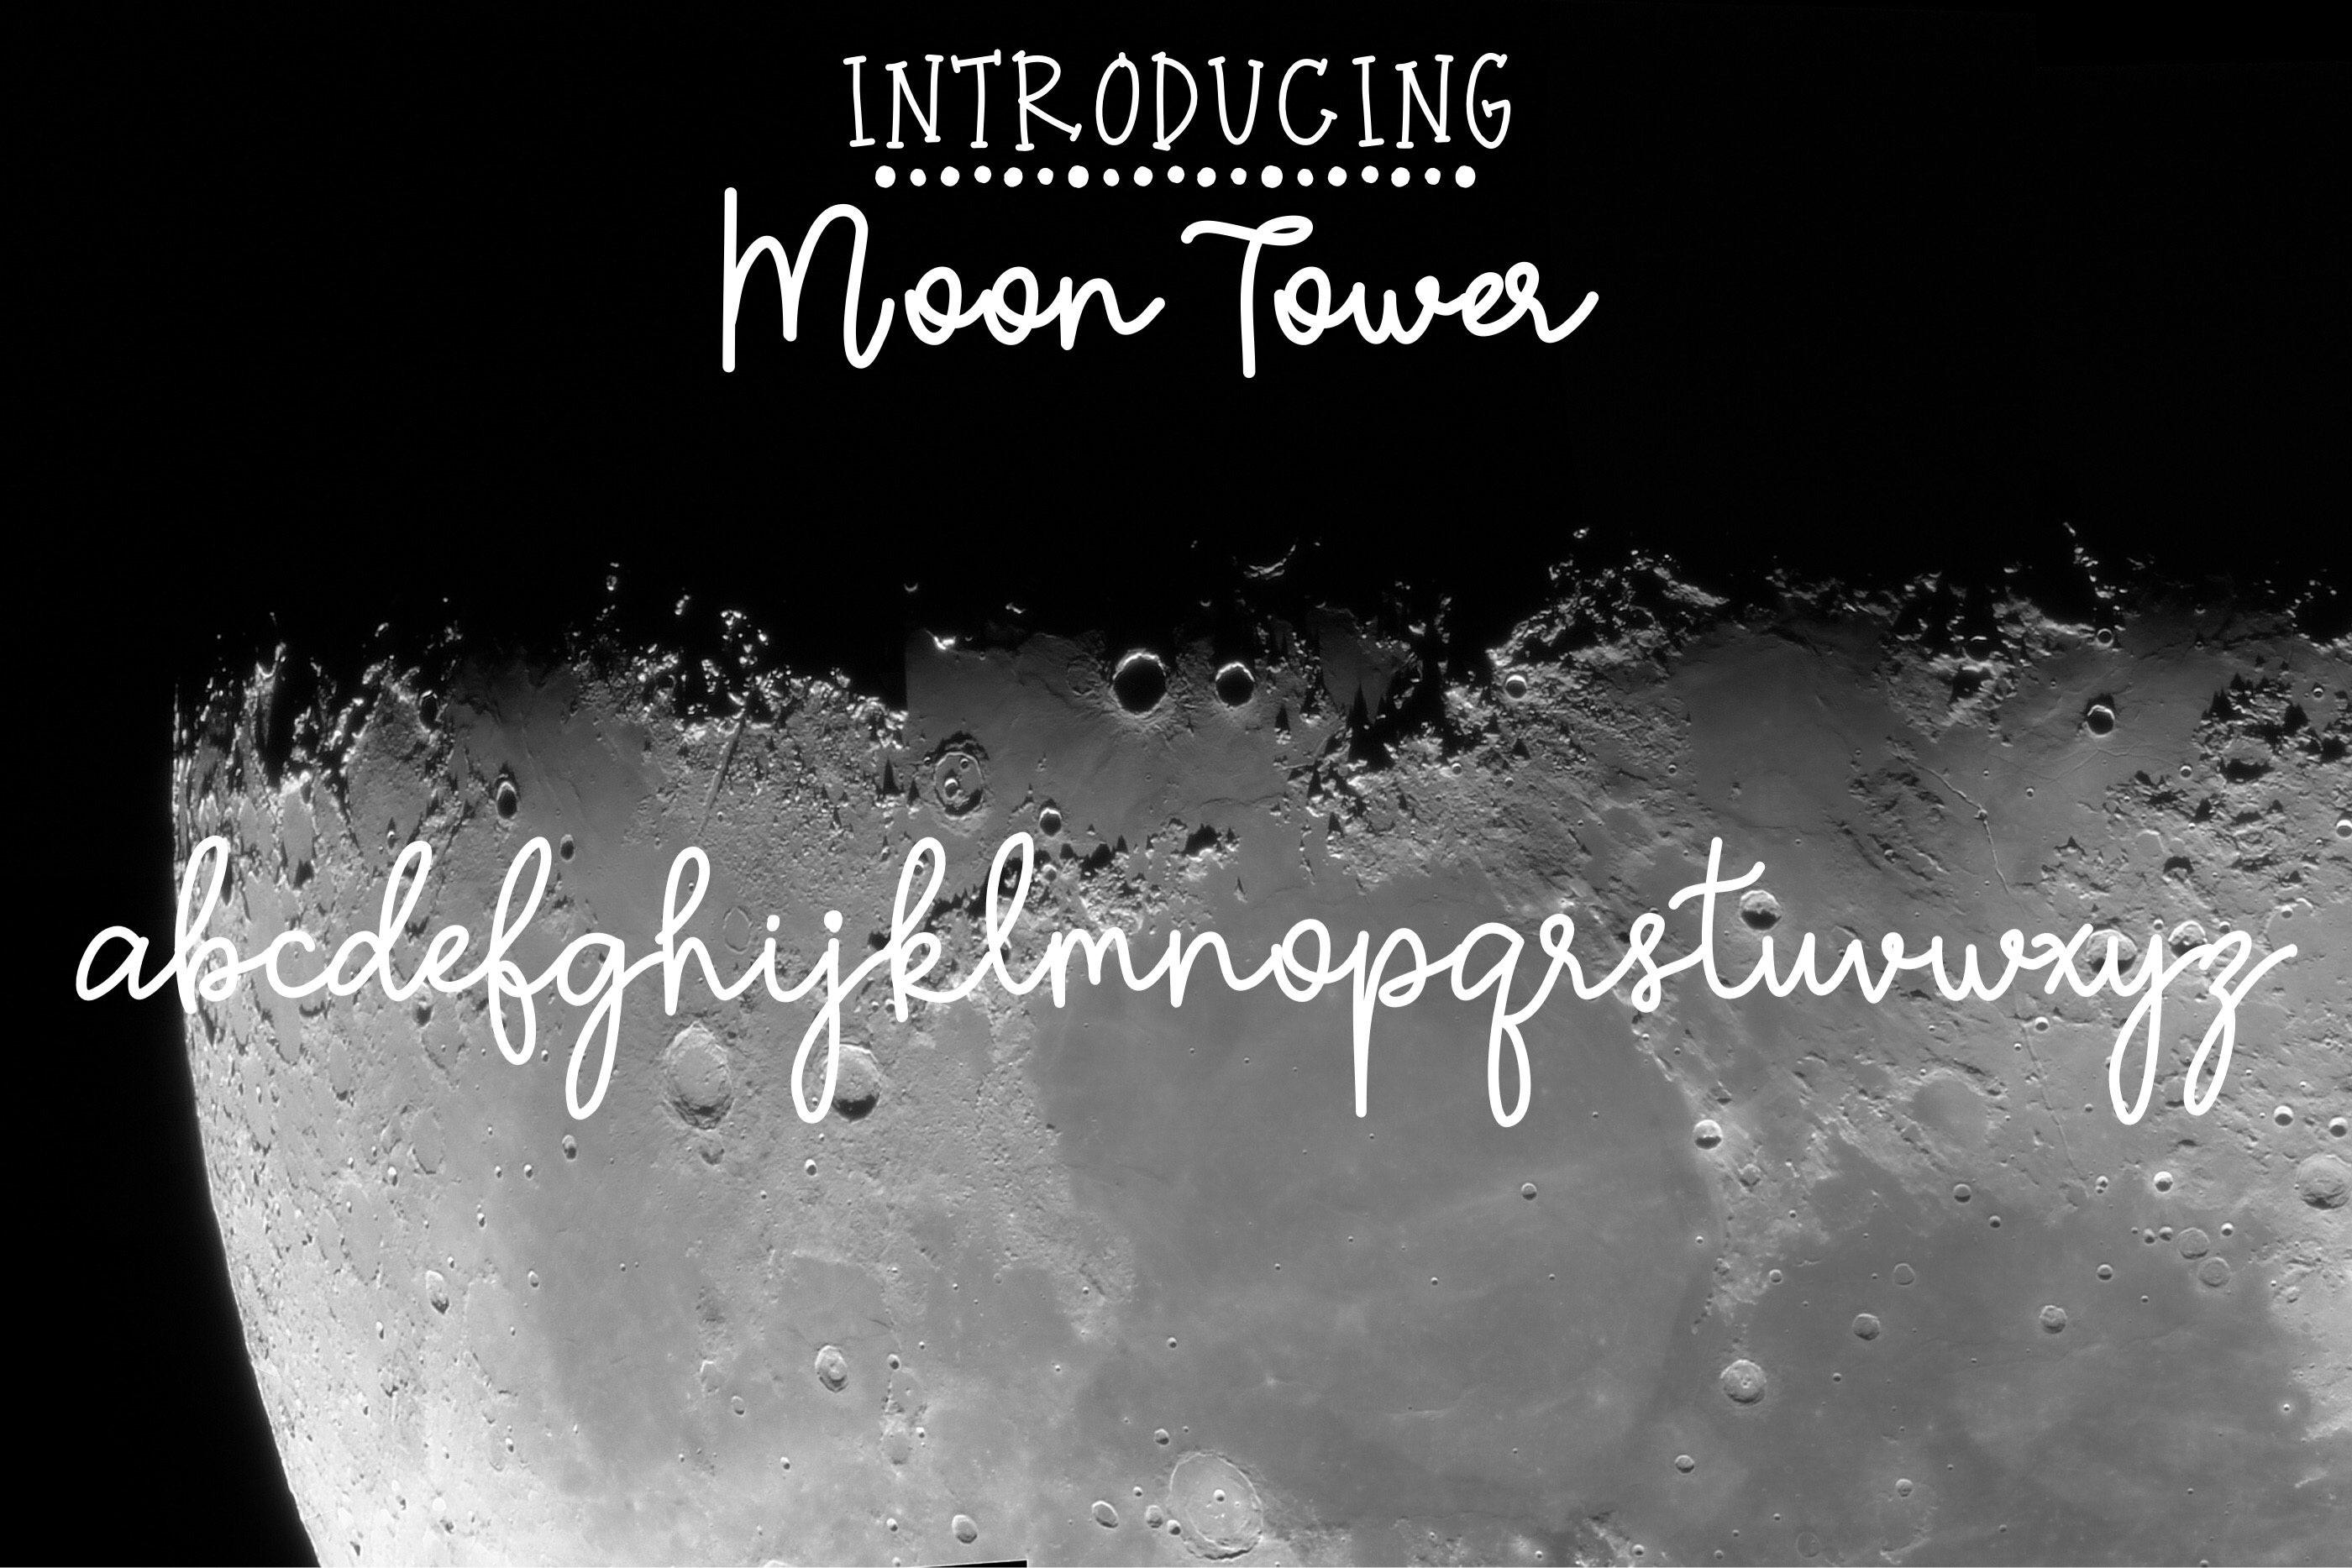 Moon Tower example image 3